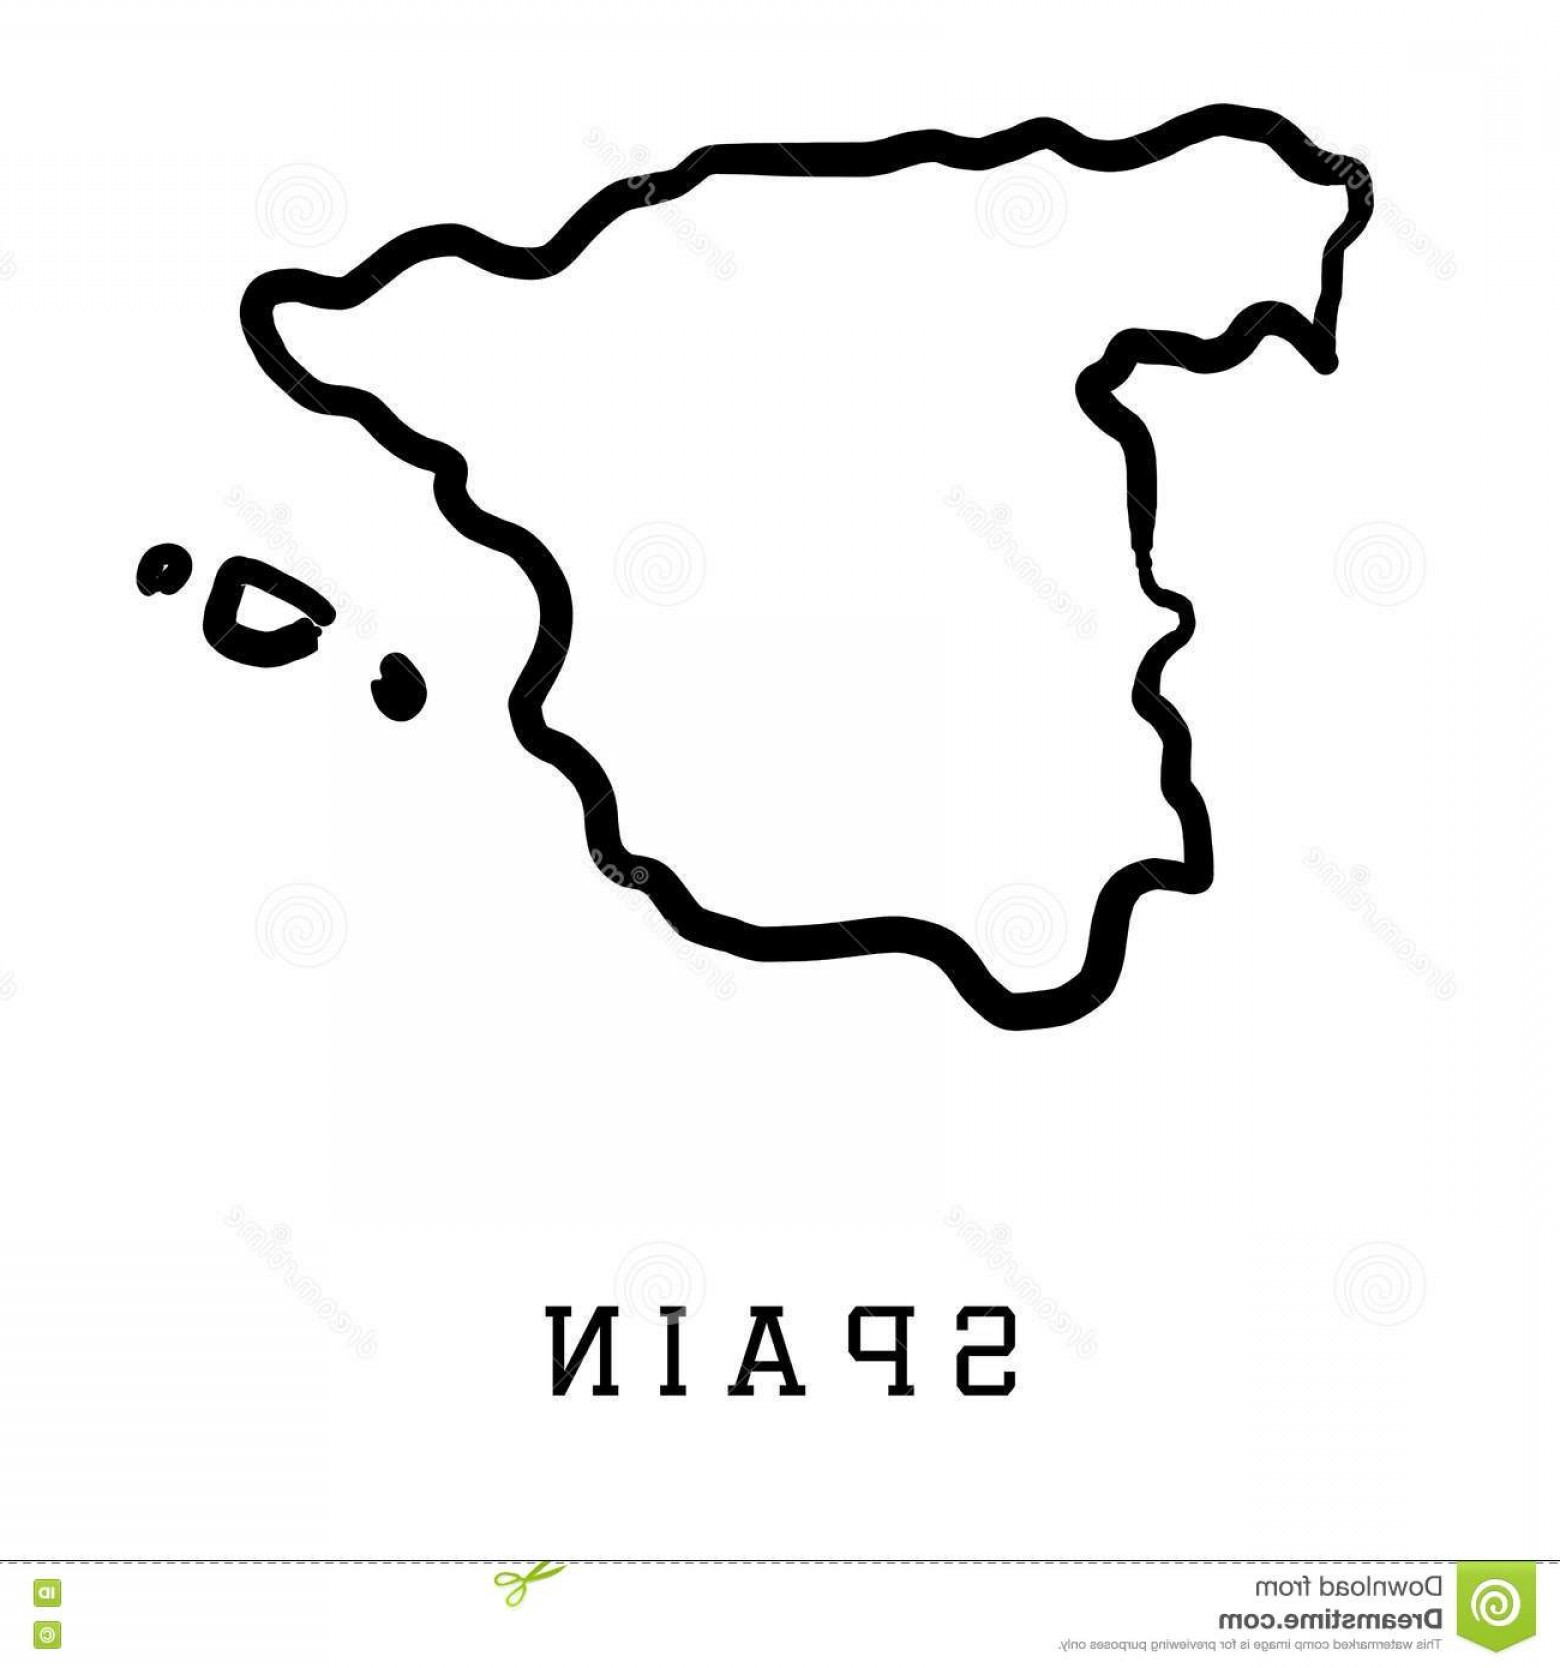 Spain Outline Vector: Stock Illustration Spain Outline Map Smooth Country Shape Vector Image